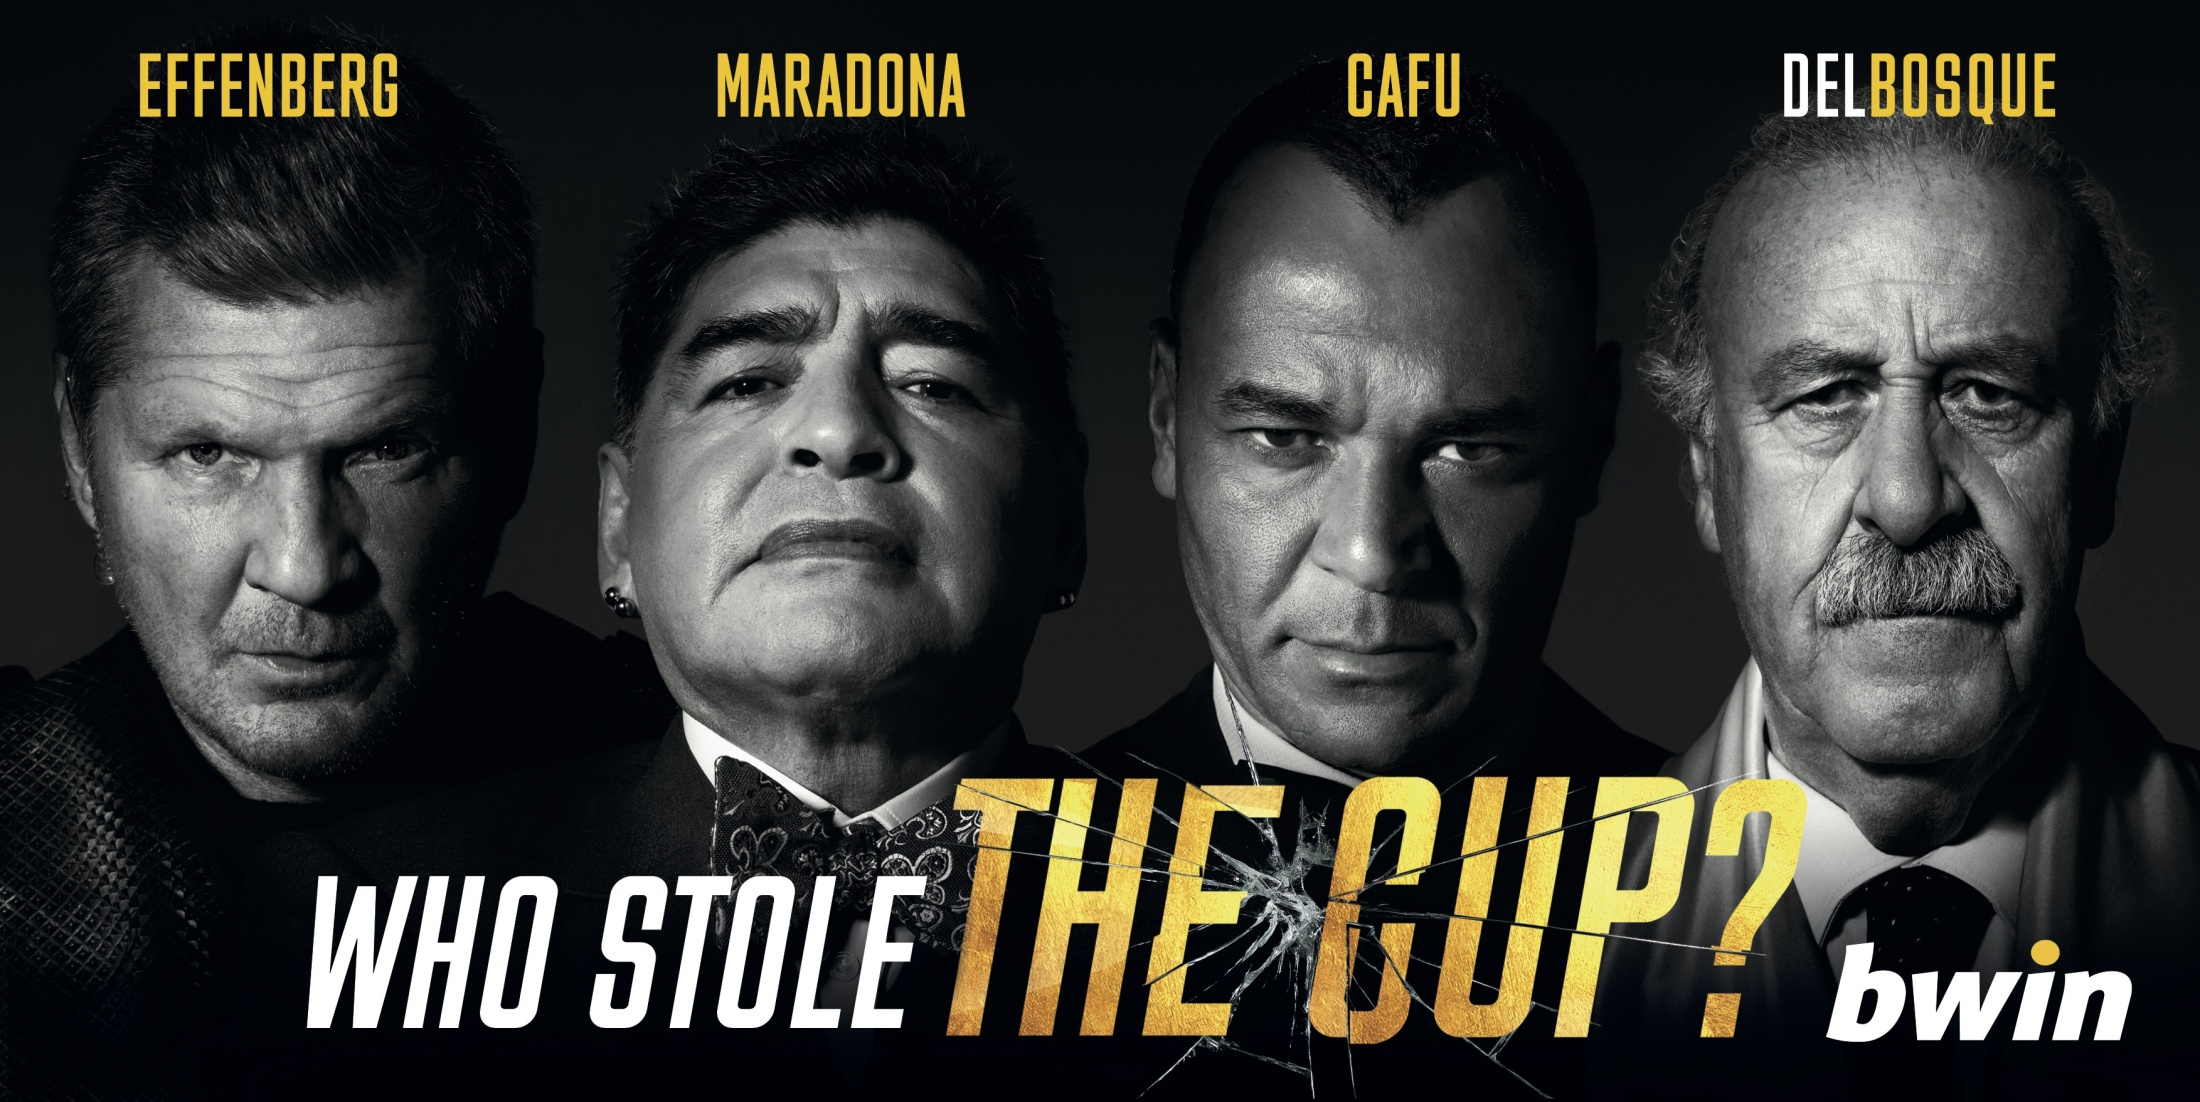 Image Media for Who stole the Cup?